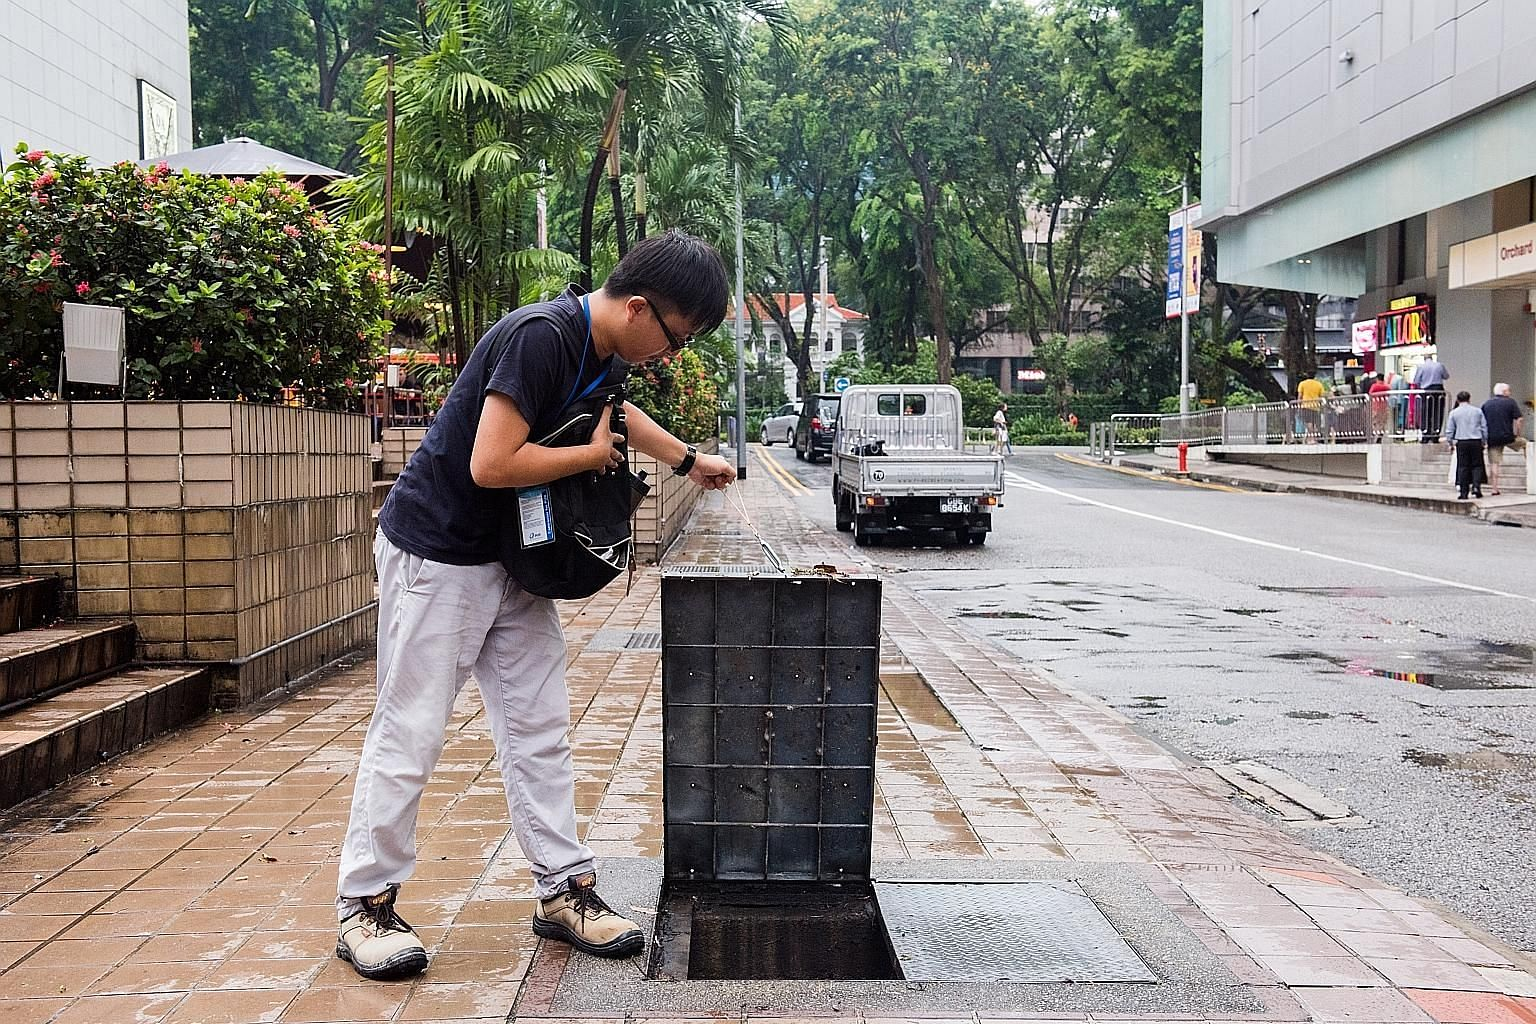 Above: Murky water flooding Cavenagh Road near Kramat Lane yesterday. Left: Heavy rain pelting down in the afternoon in Chinatown. Contractor Toh Wei Kian checking the drains in the Orchard Road area to see if any needed repair.